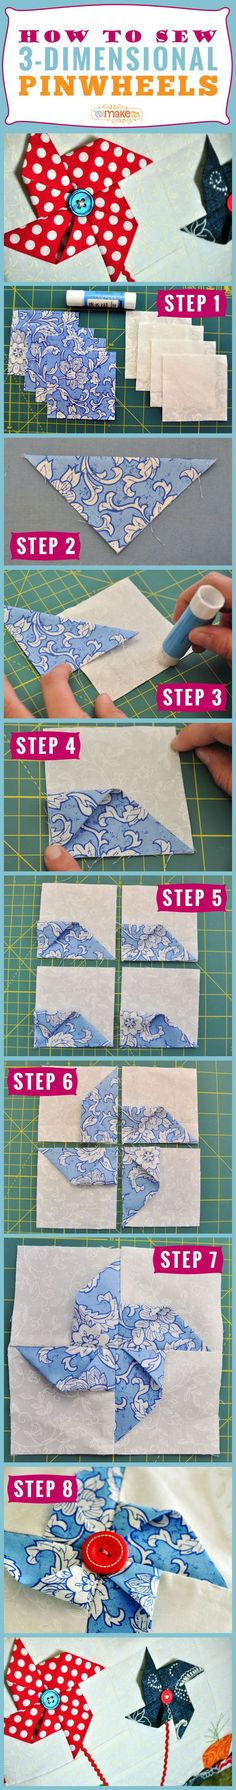 How to Make 3-D Pinwheels   Sewing Pattern Articles   YouCanMakeThis.com